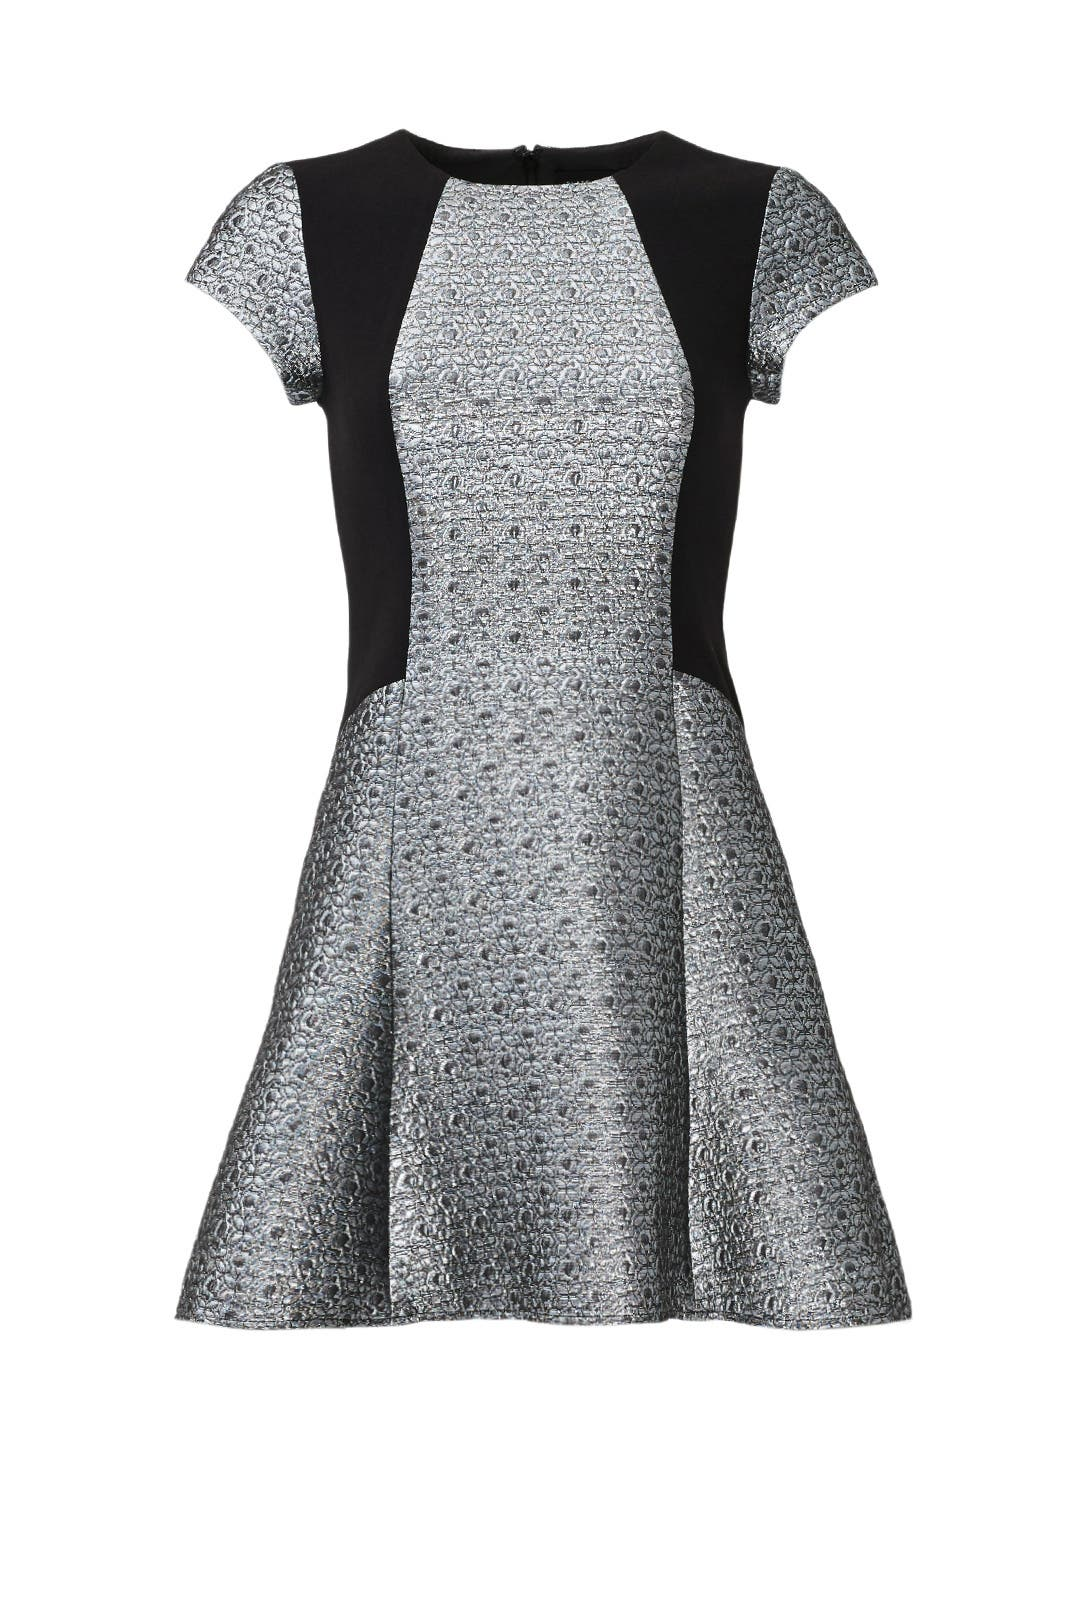 Fiona Dress by Slate & Willow